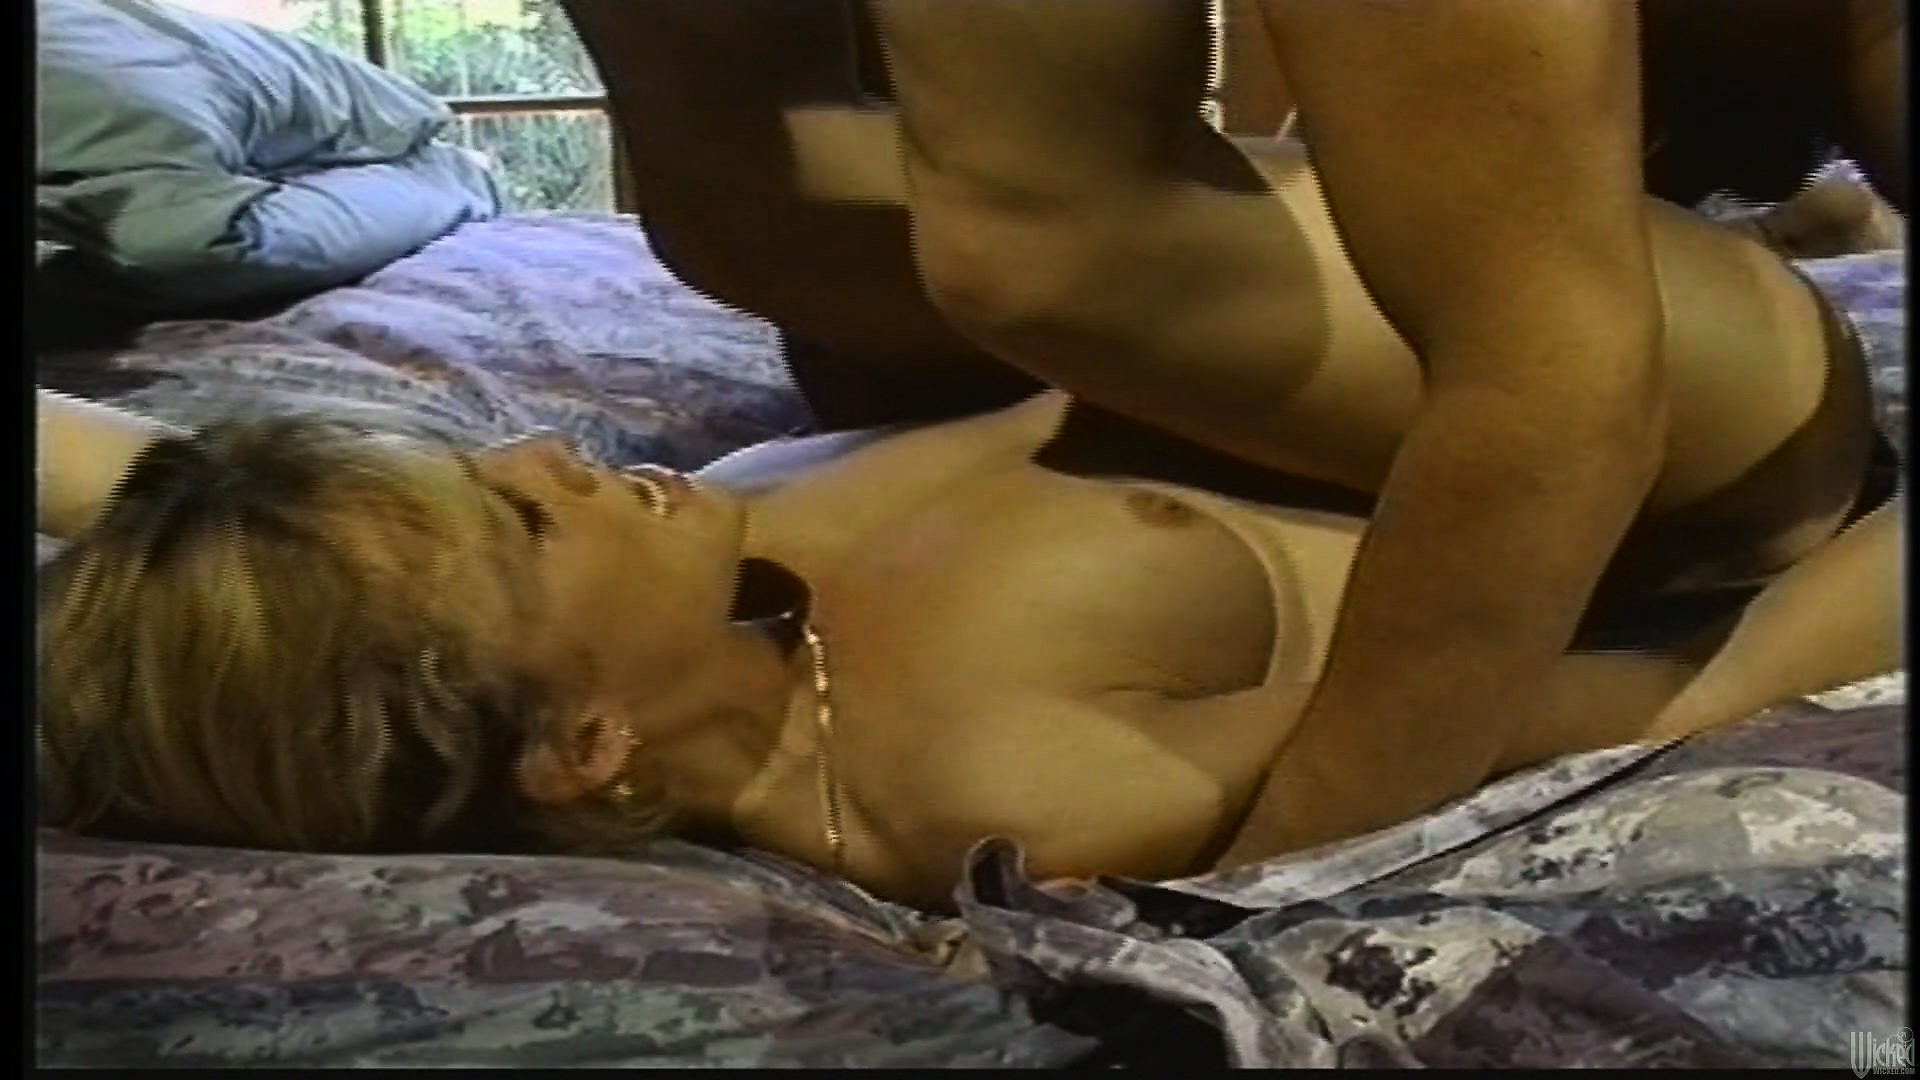 Porno Video of He Bangs The Blonde's Wet Pussy All Over The Bed And She Sighs With Intense Pleasure